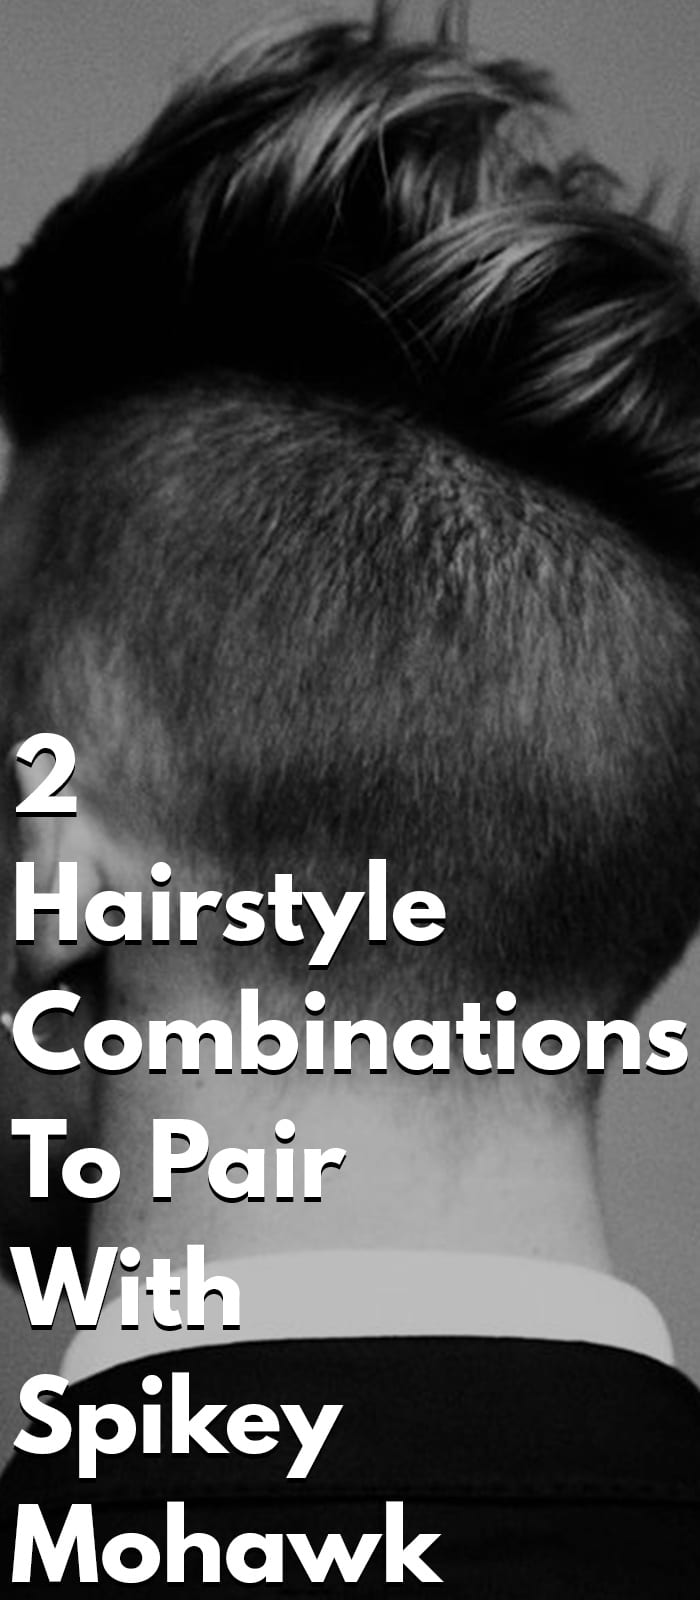 2 Hairstyle Combinations To Pair With Spikey Mohawk